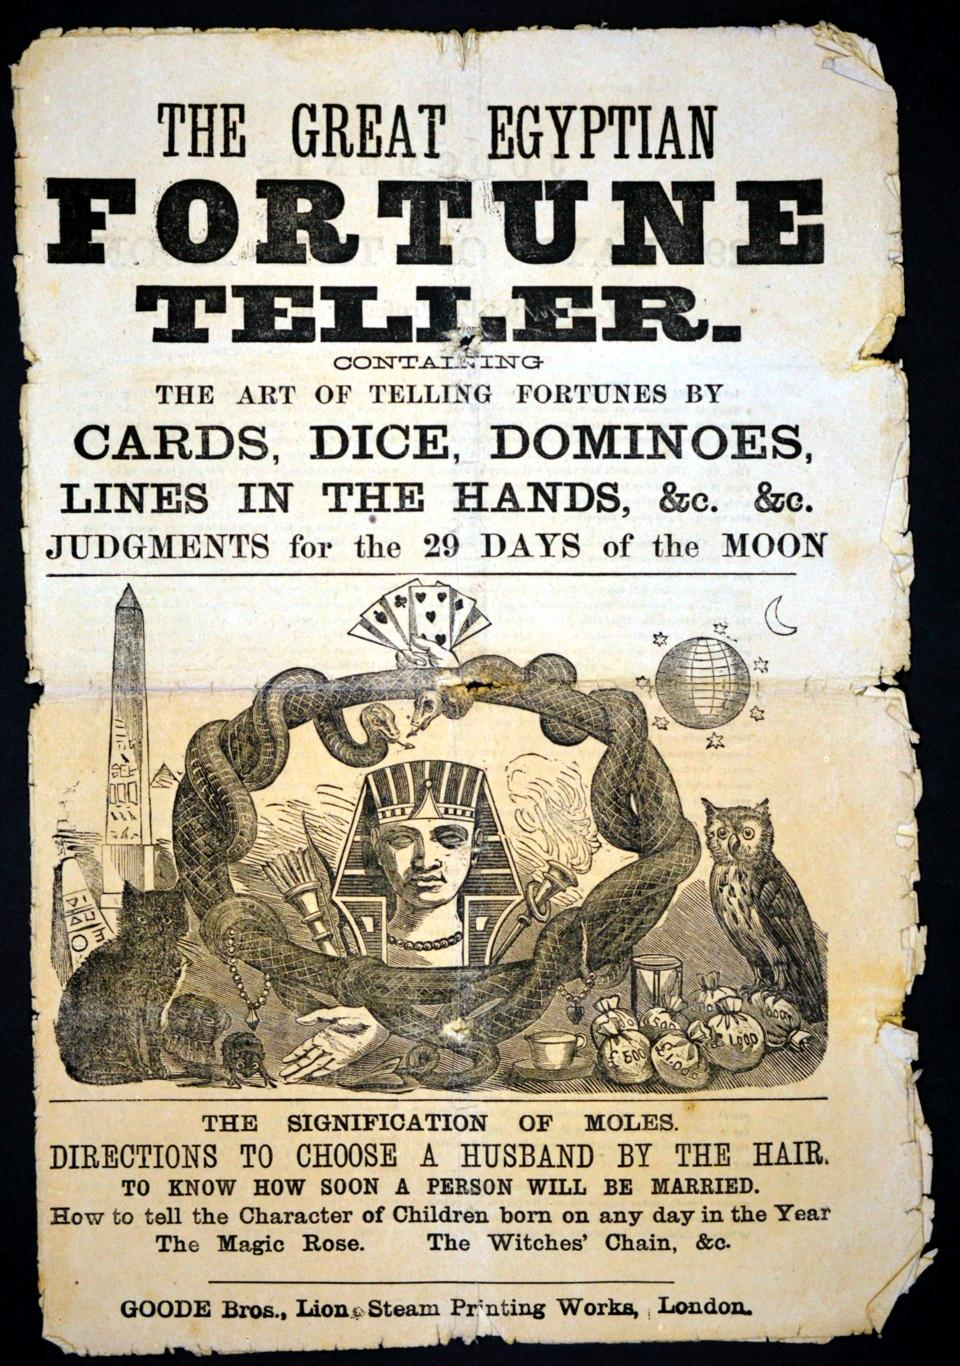 The Great Egypyian Fortune Teller